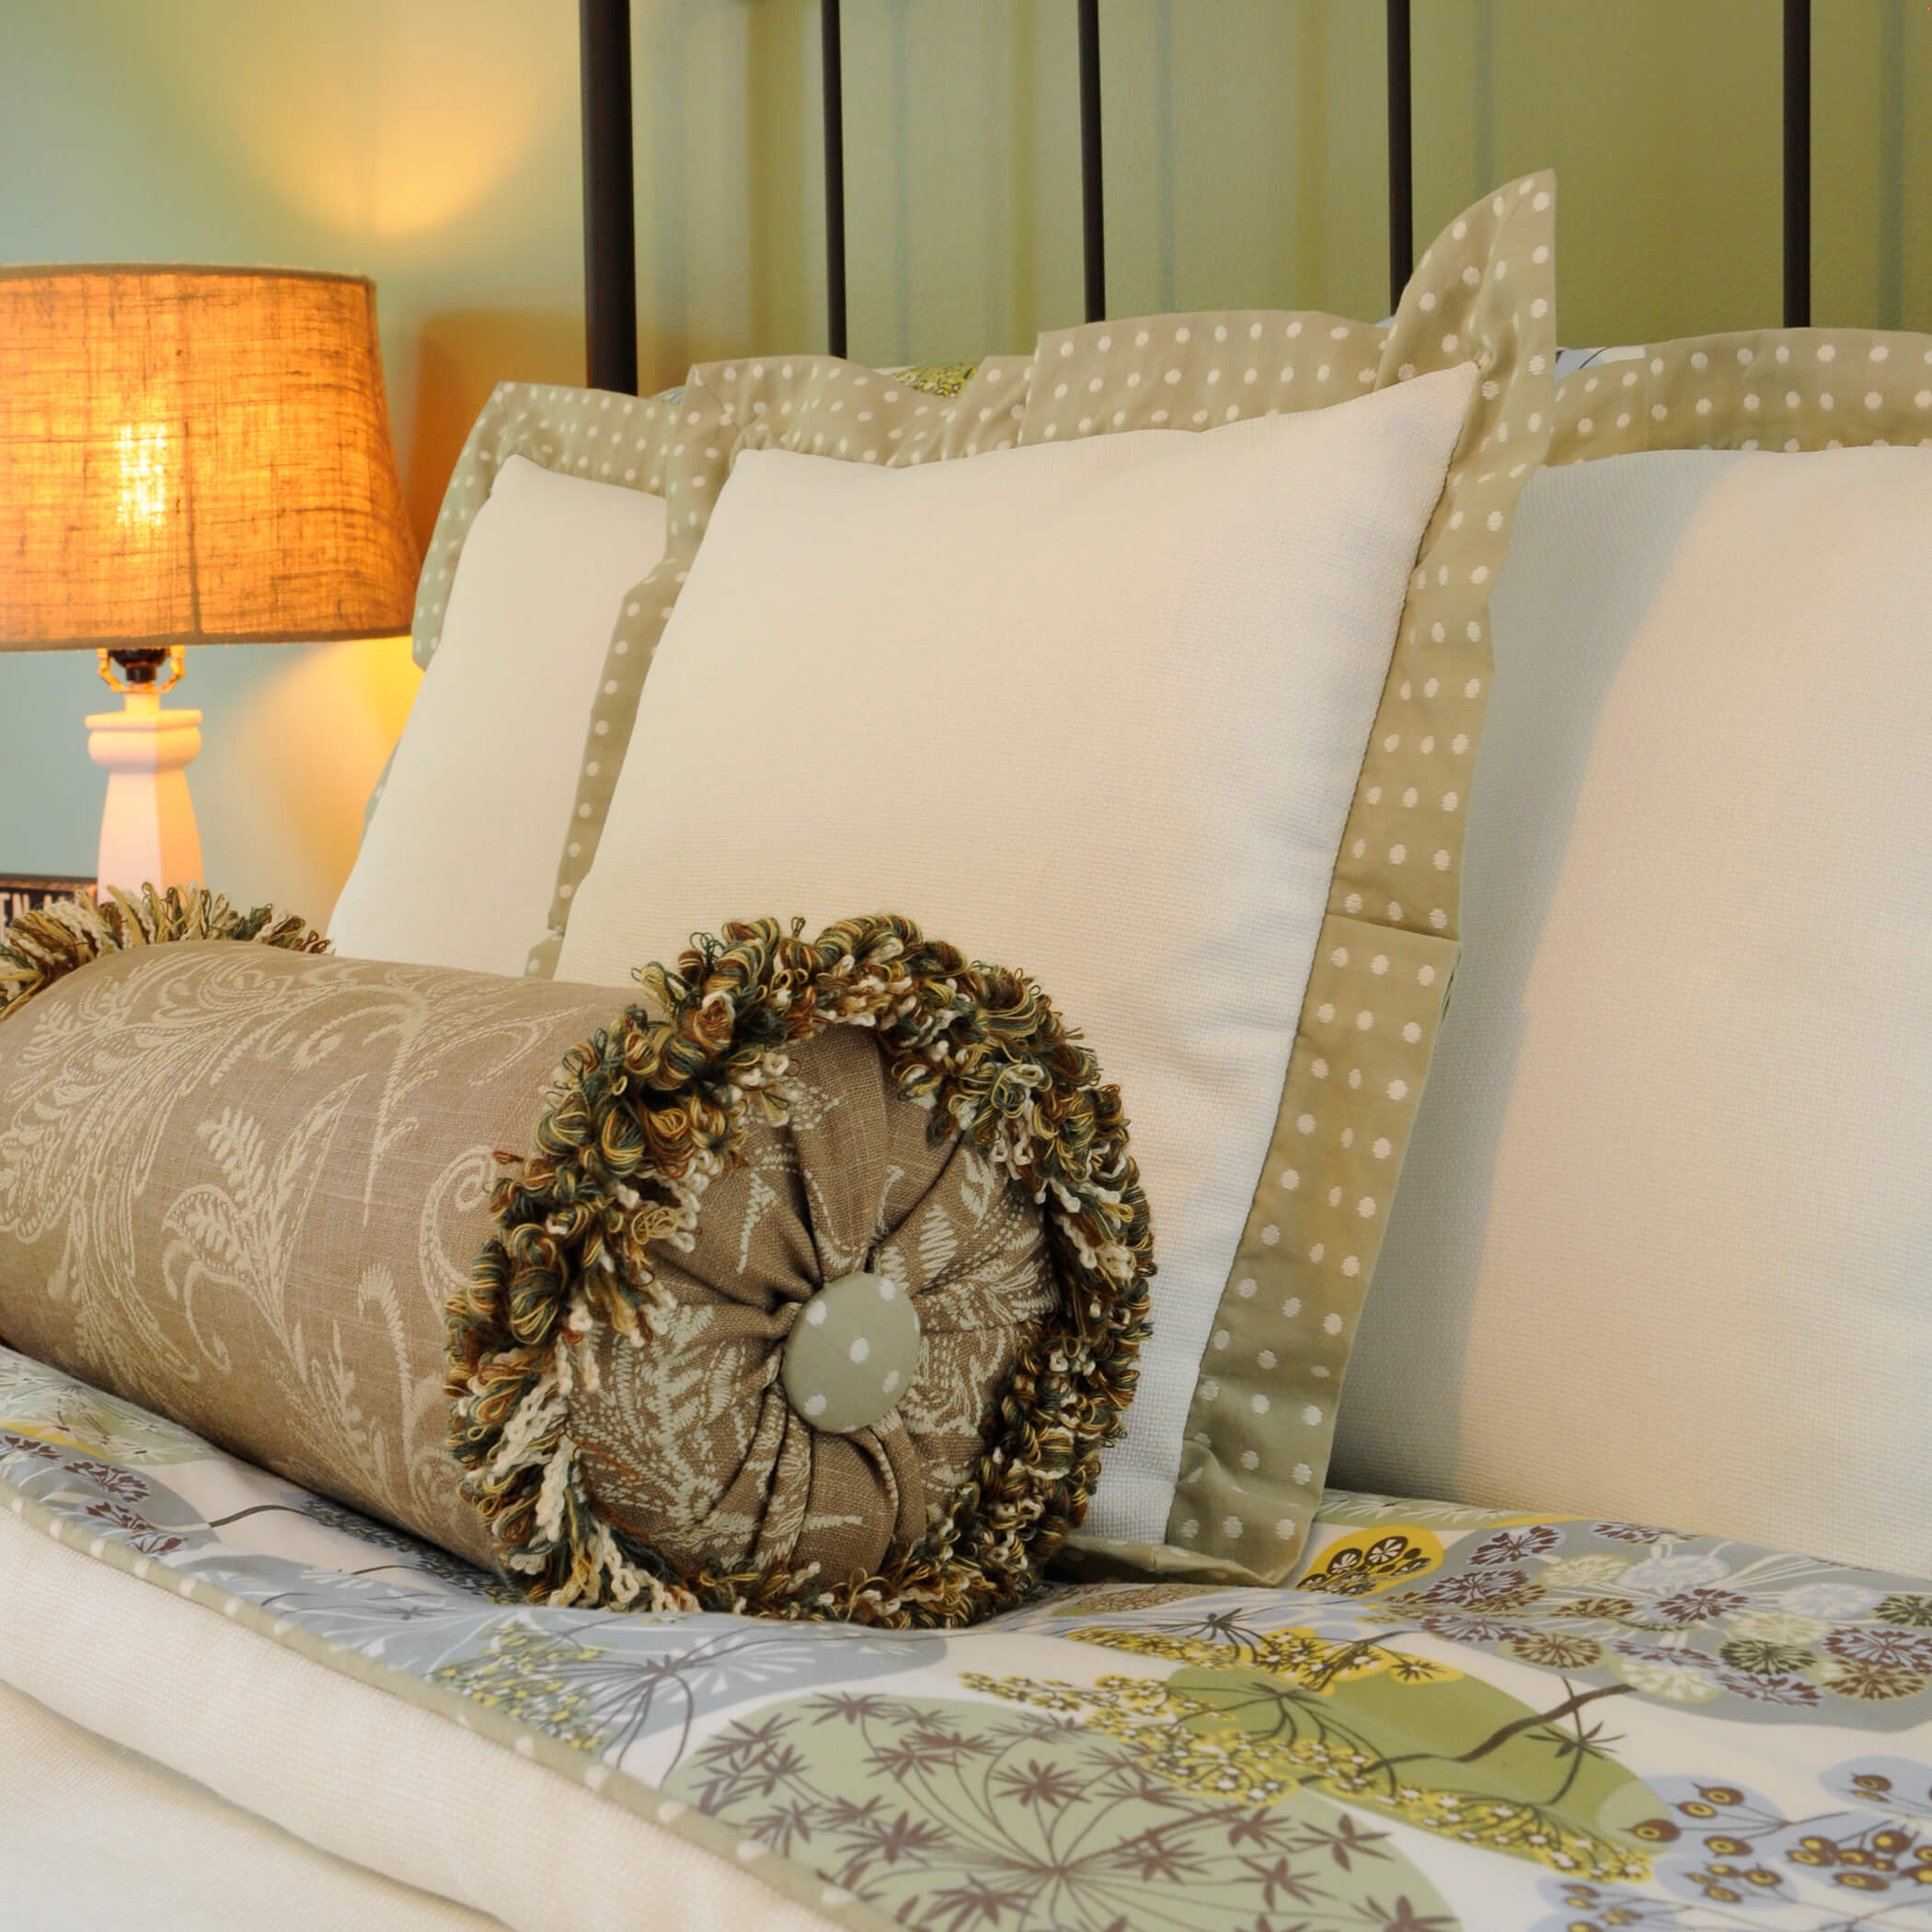 window-treatments-drapery-bedding-shades-northbrook-chicago-il-6.jpg